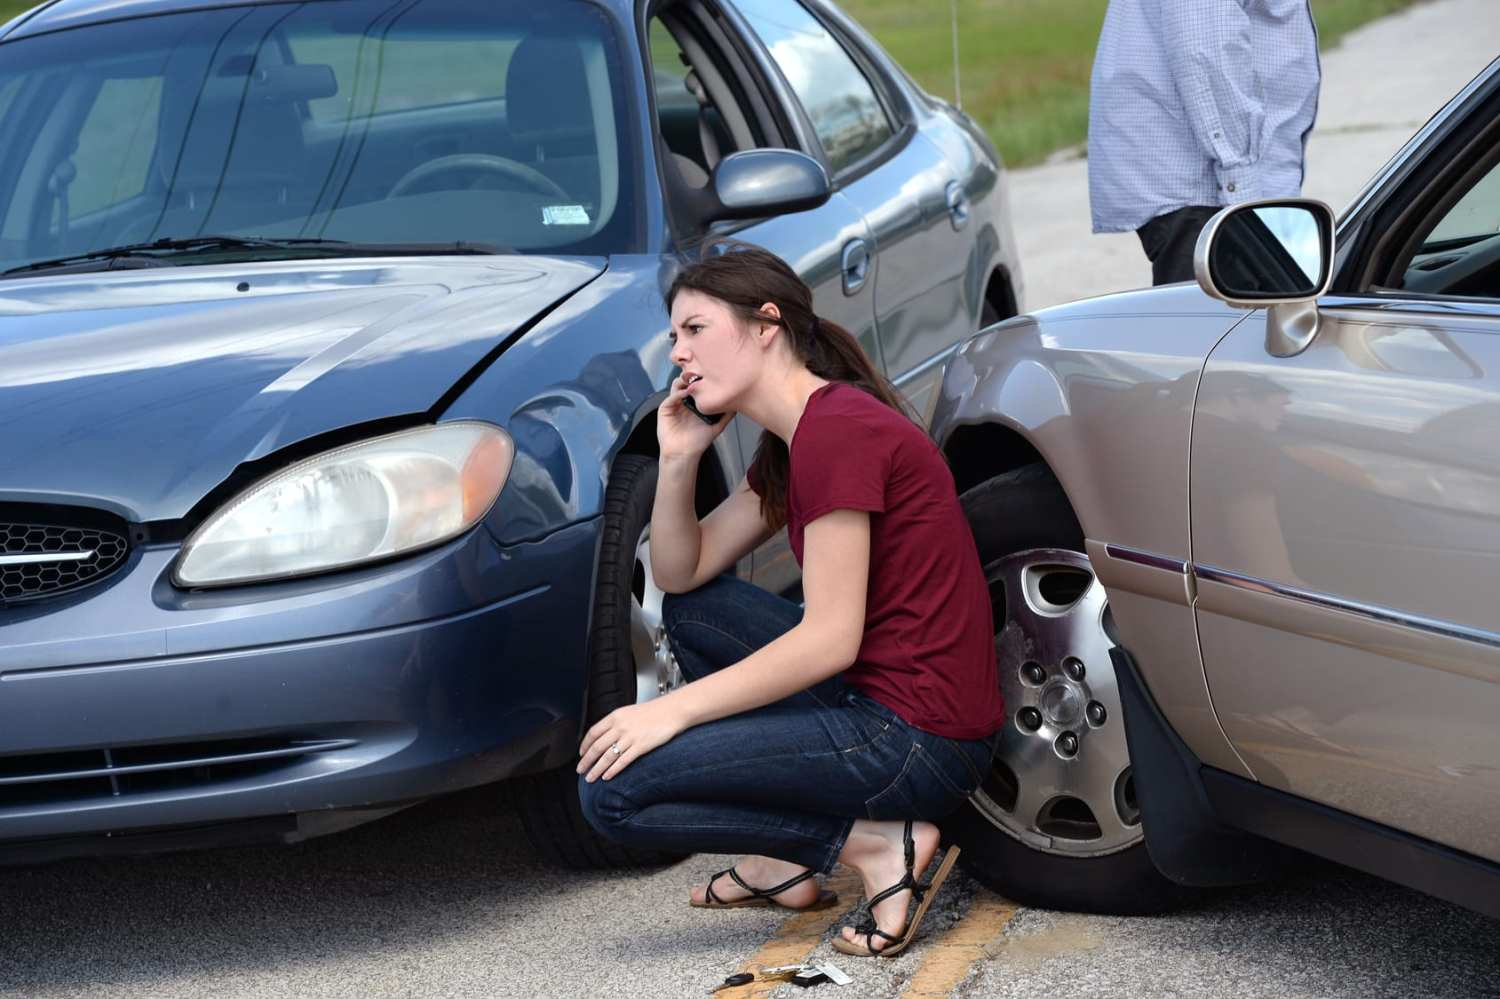 car accident when you are at fault